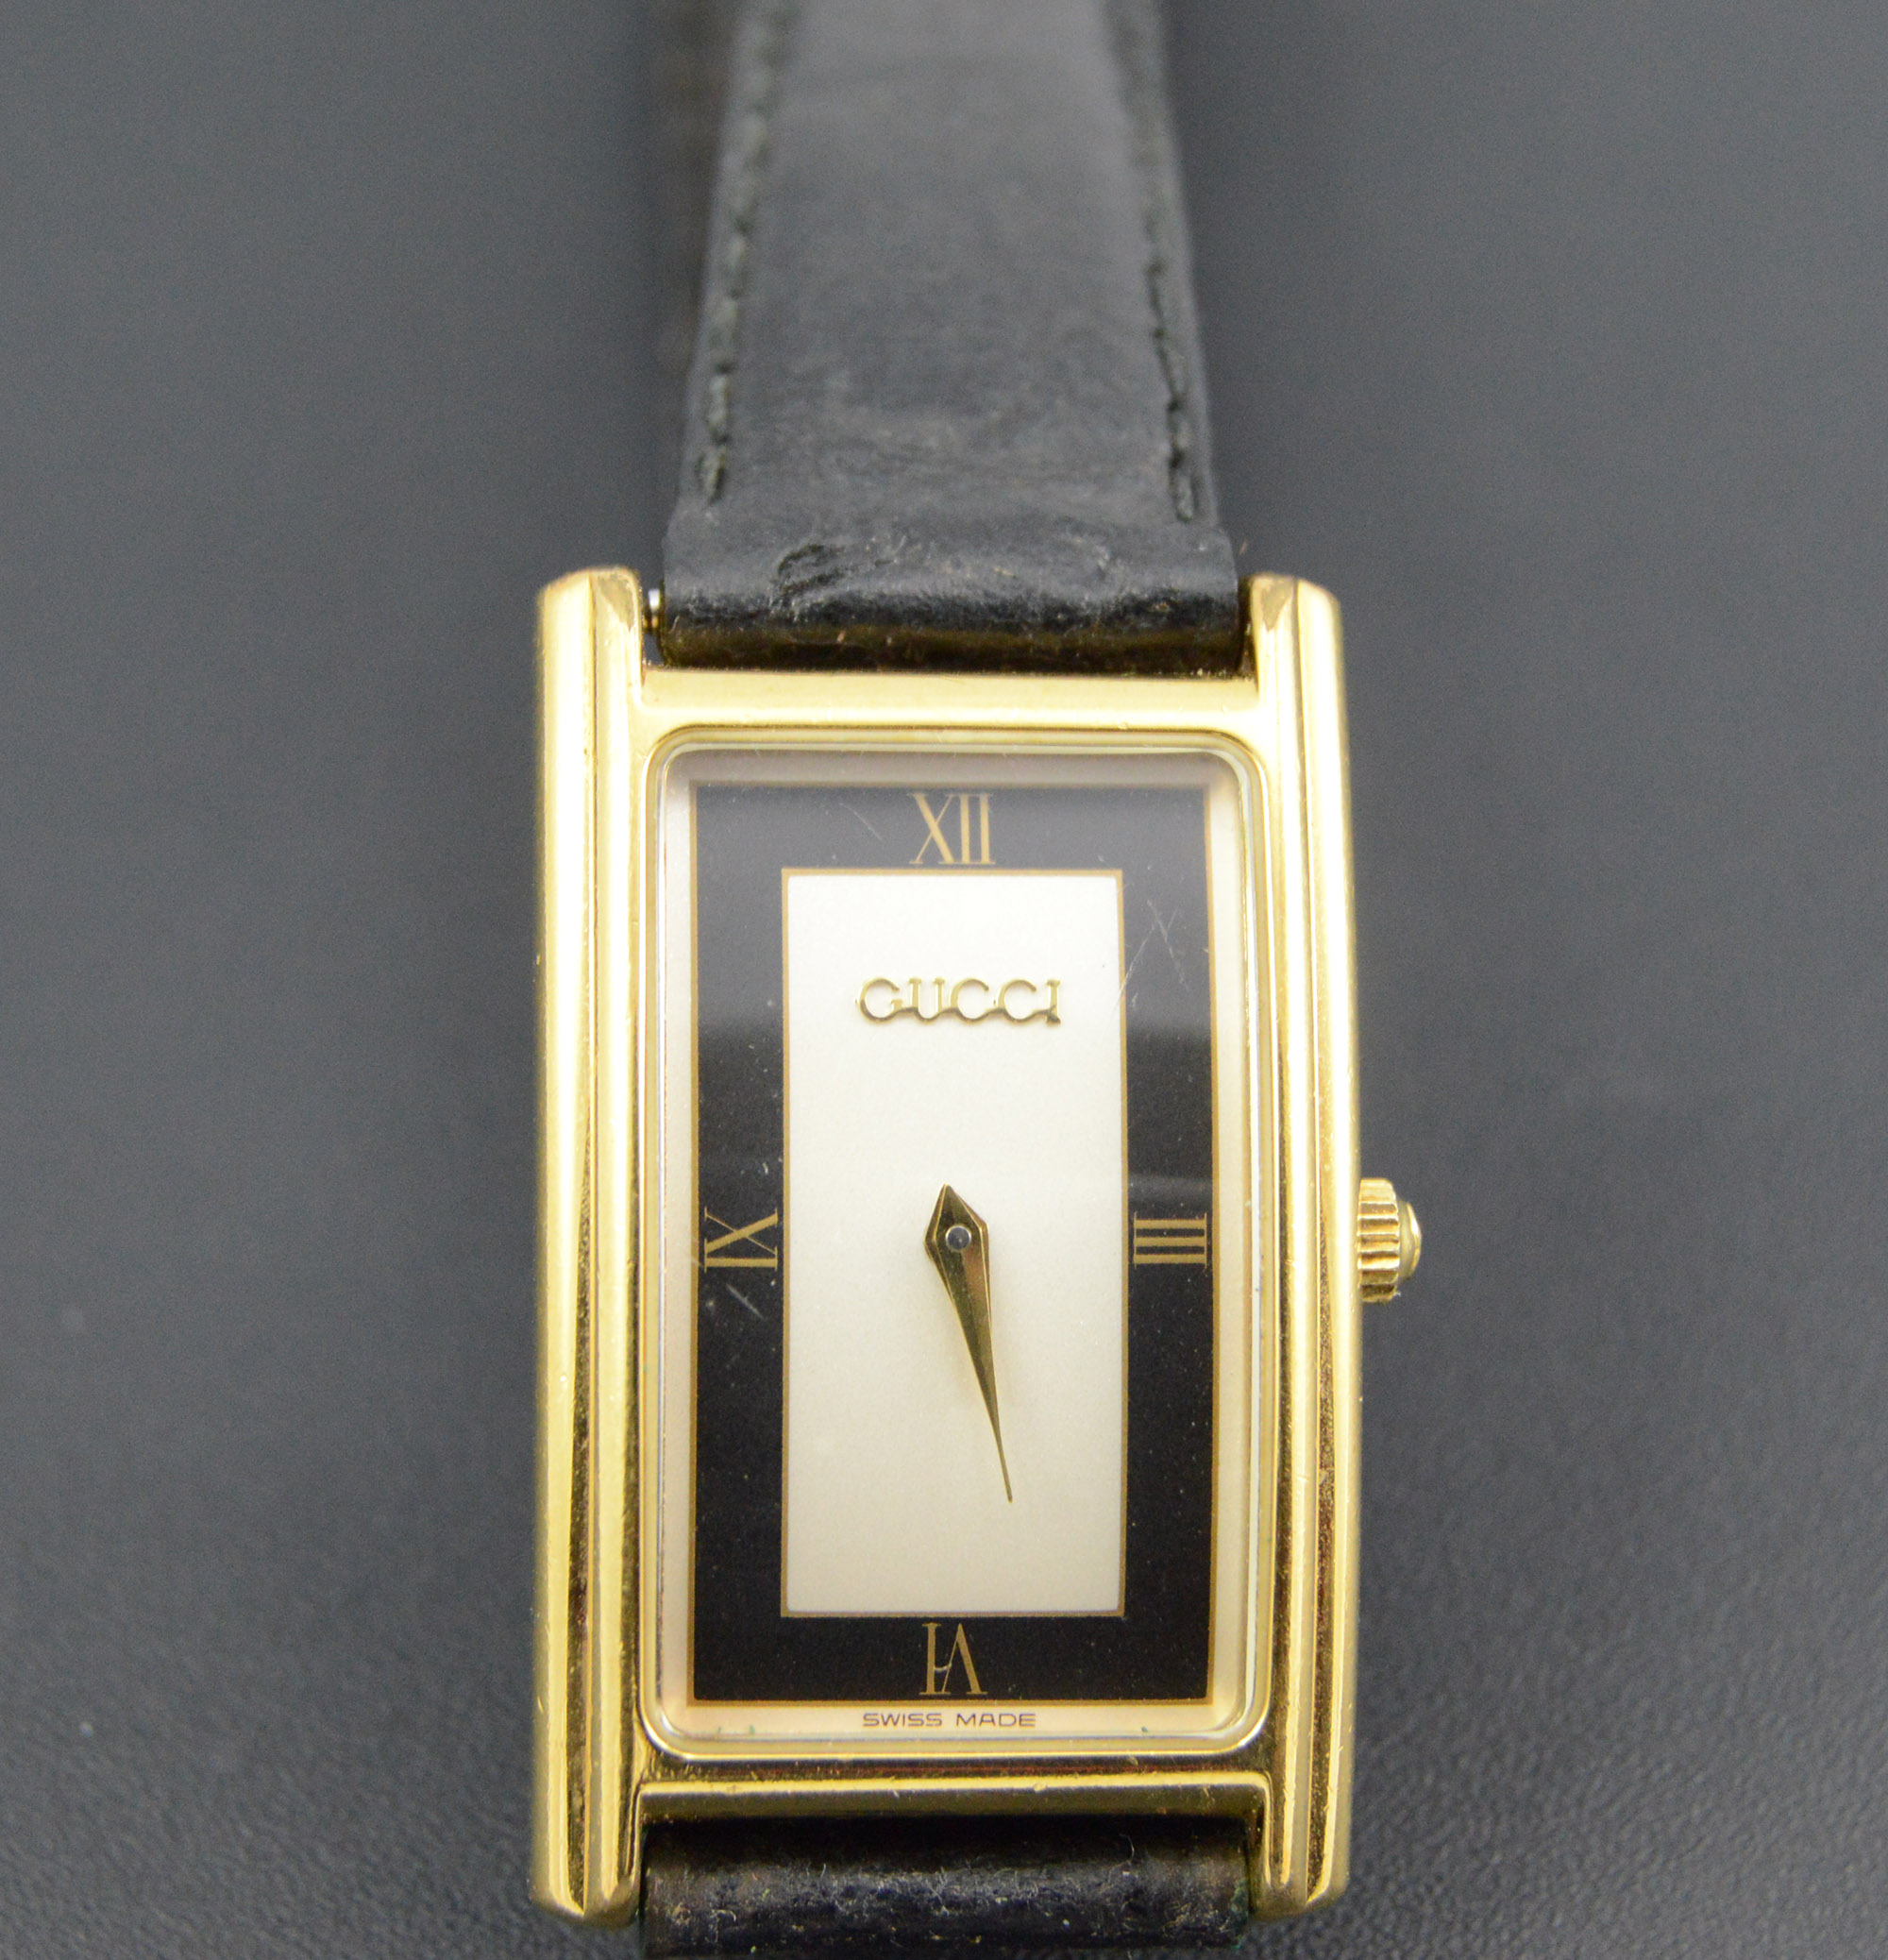 Gucci Gold Plated Rectangular Black Leather Strap 27.5x17